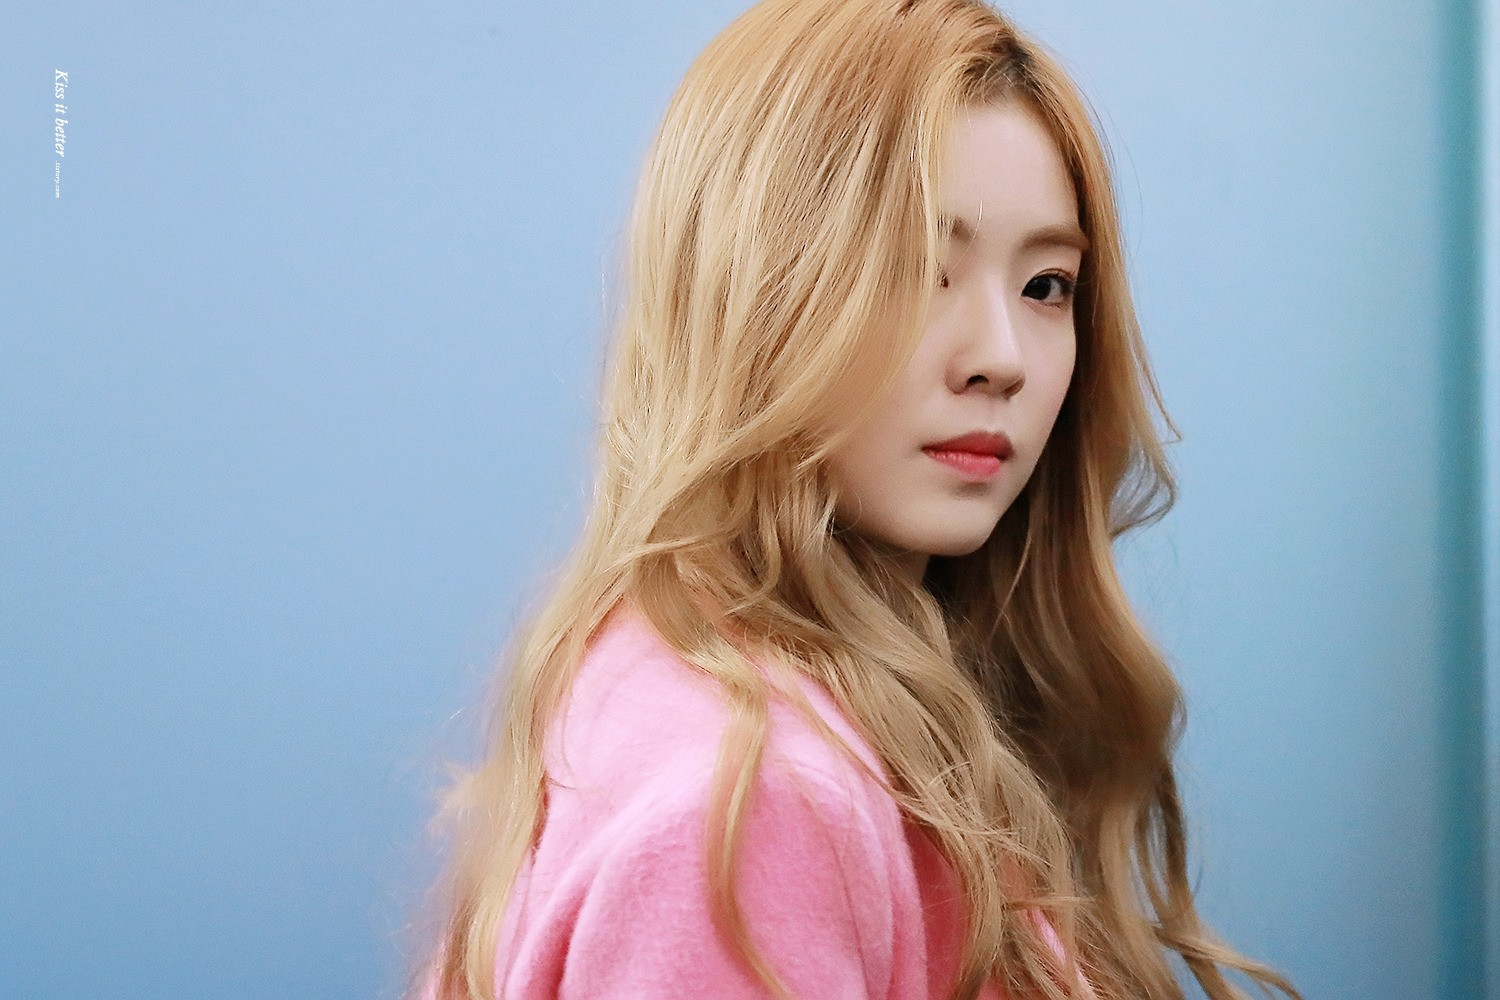 Beautiful Girl Face Hd Desktop Wallpaper This Is What Red Velvet S Irene Actually Looks Like In